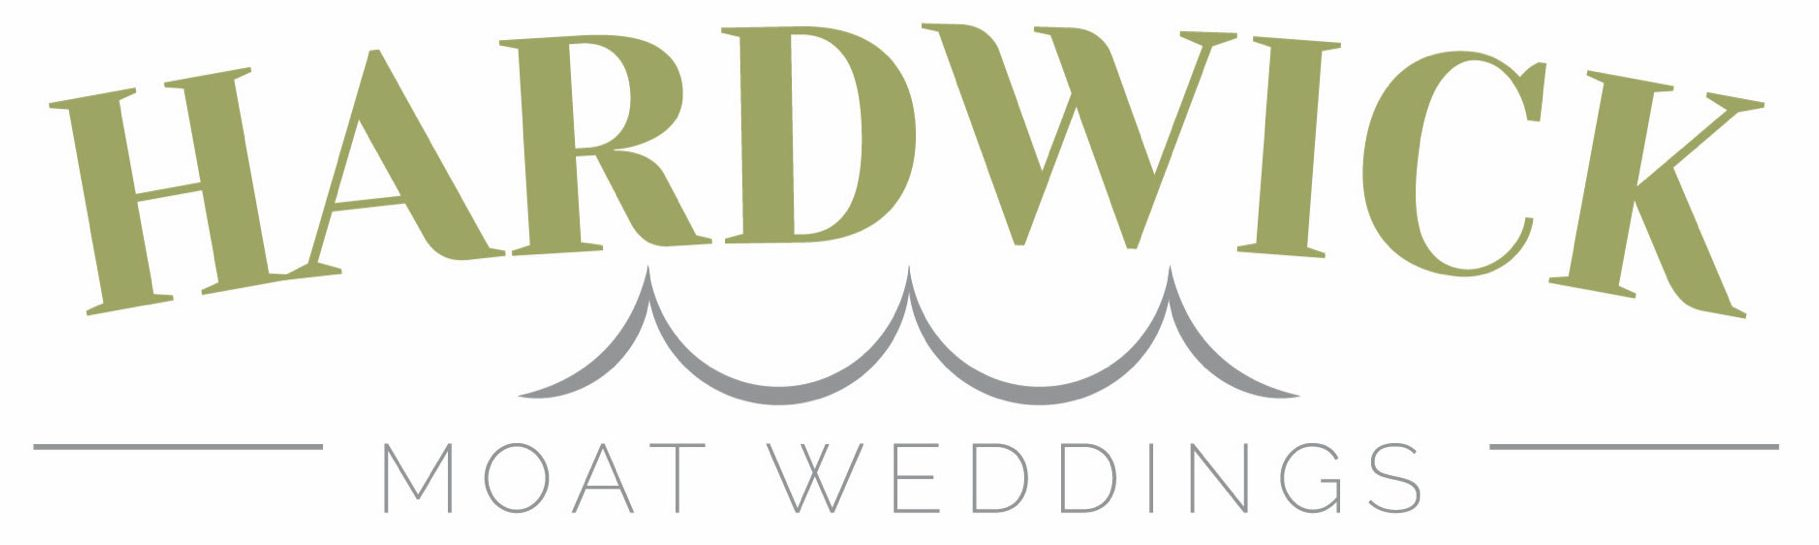 Hardwick Moat Weddings